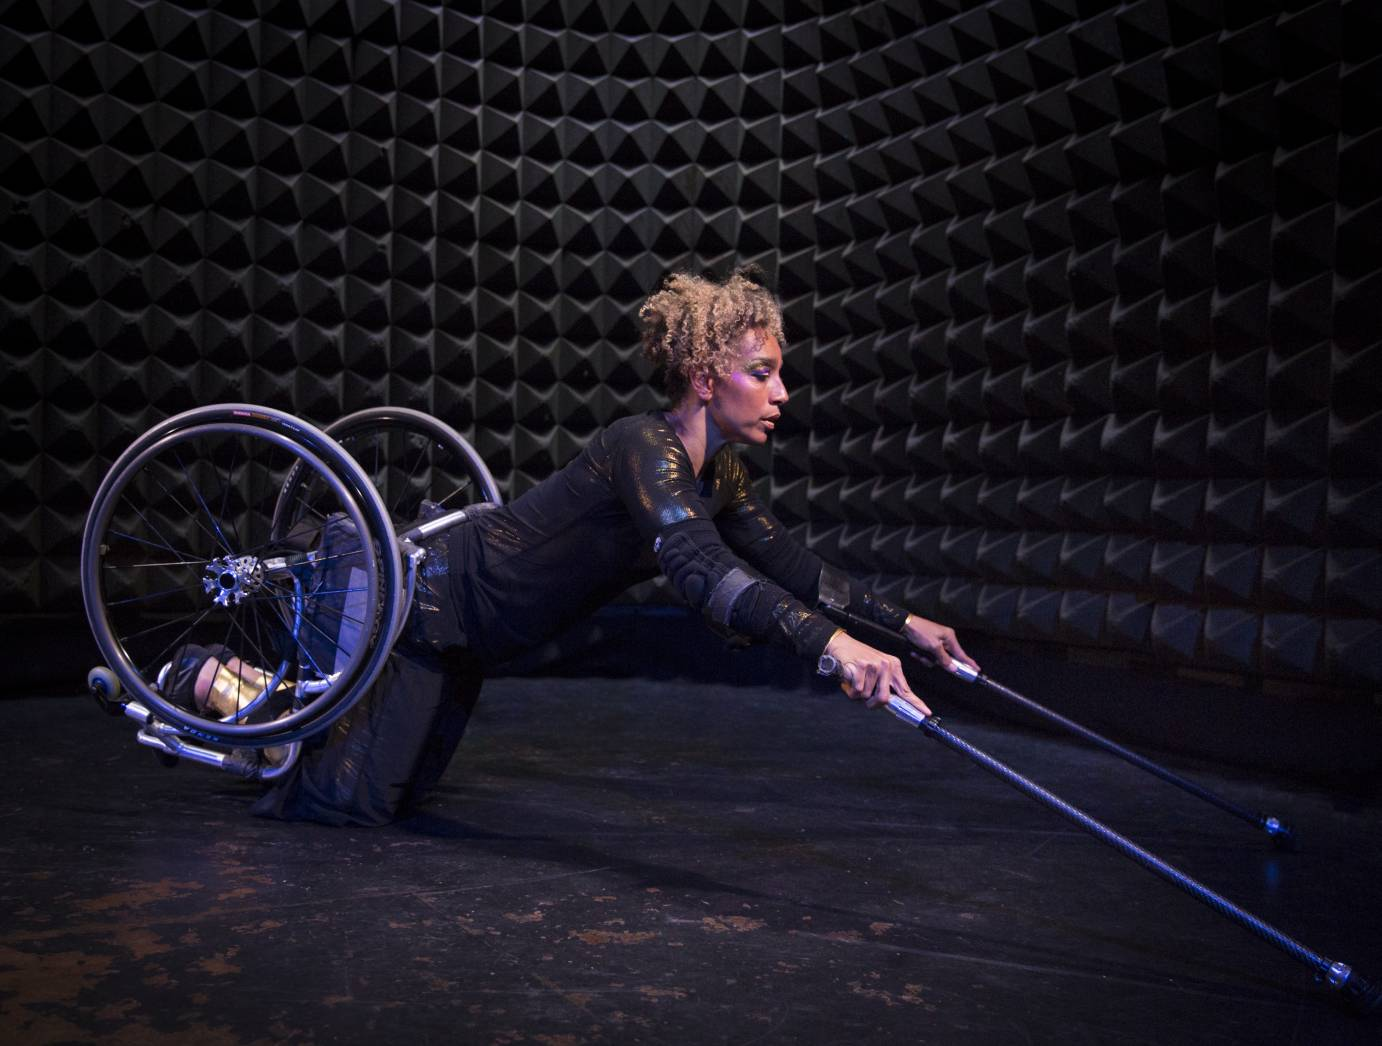 In a wheelchair, a woman balances on her knees. Her arms are extended, and she holds two sticks.